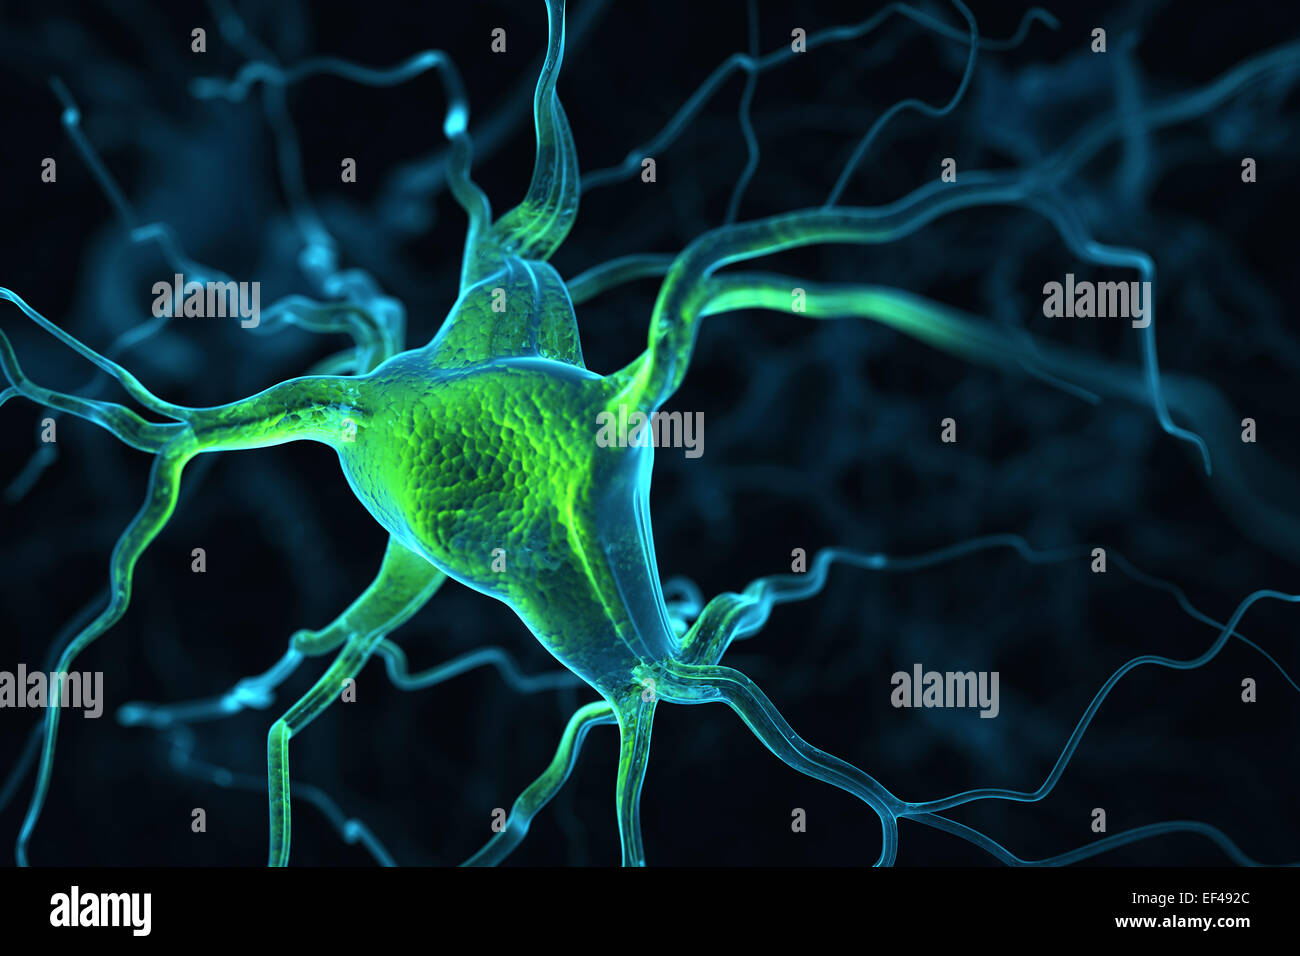 Neurons abstract background - Stock Image